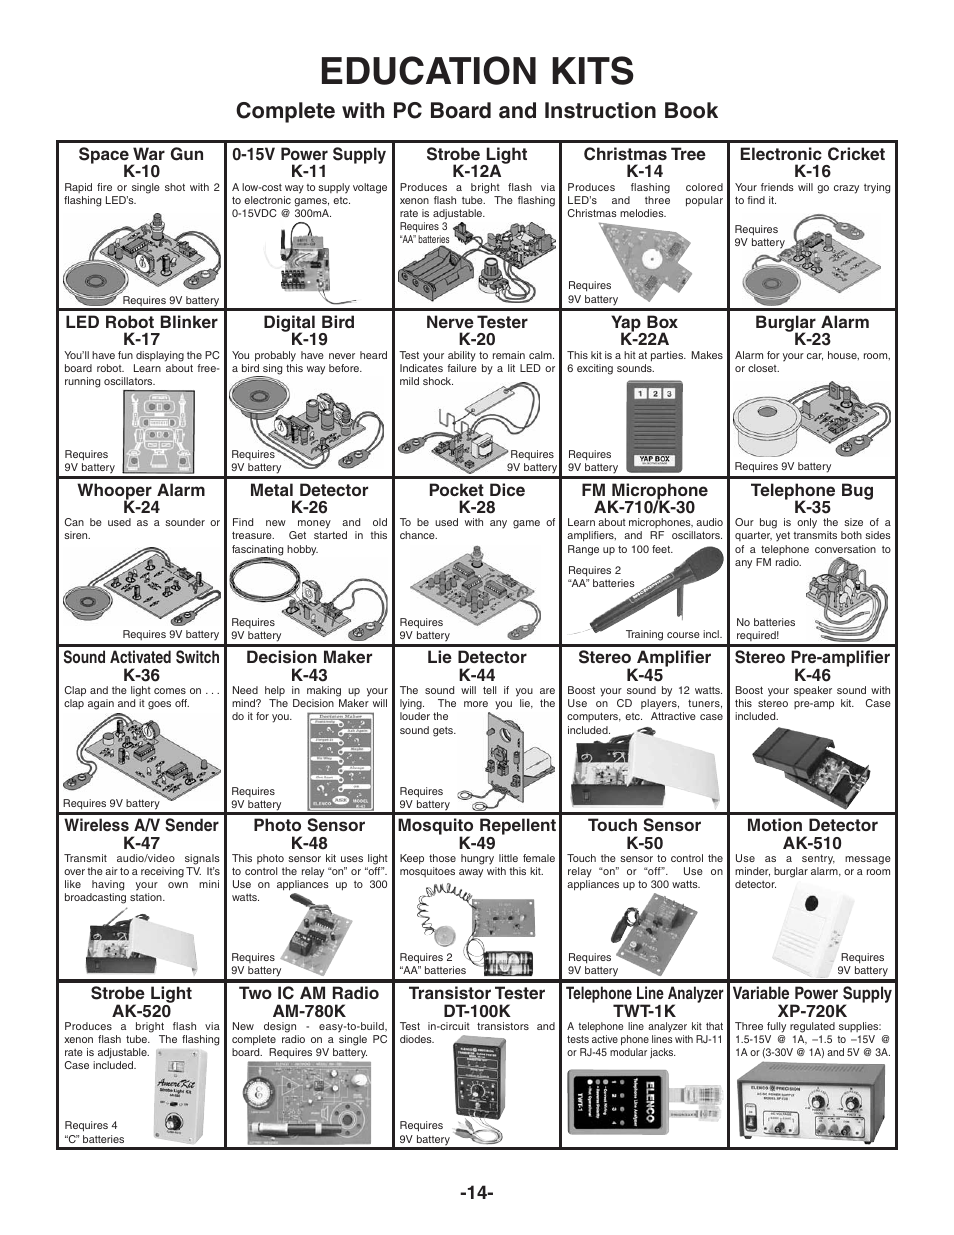 Education kits, Complete with pc board and instruction book | Elenco  Digital Roulette Kit User Manual | Page 15 / 16